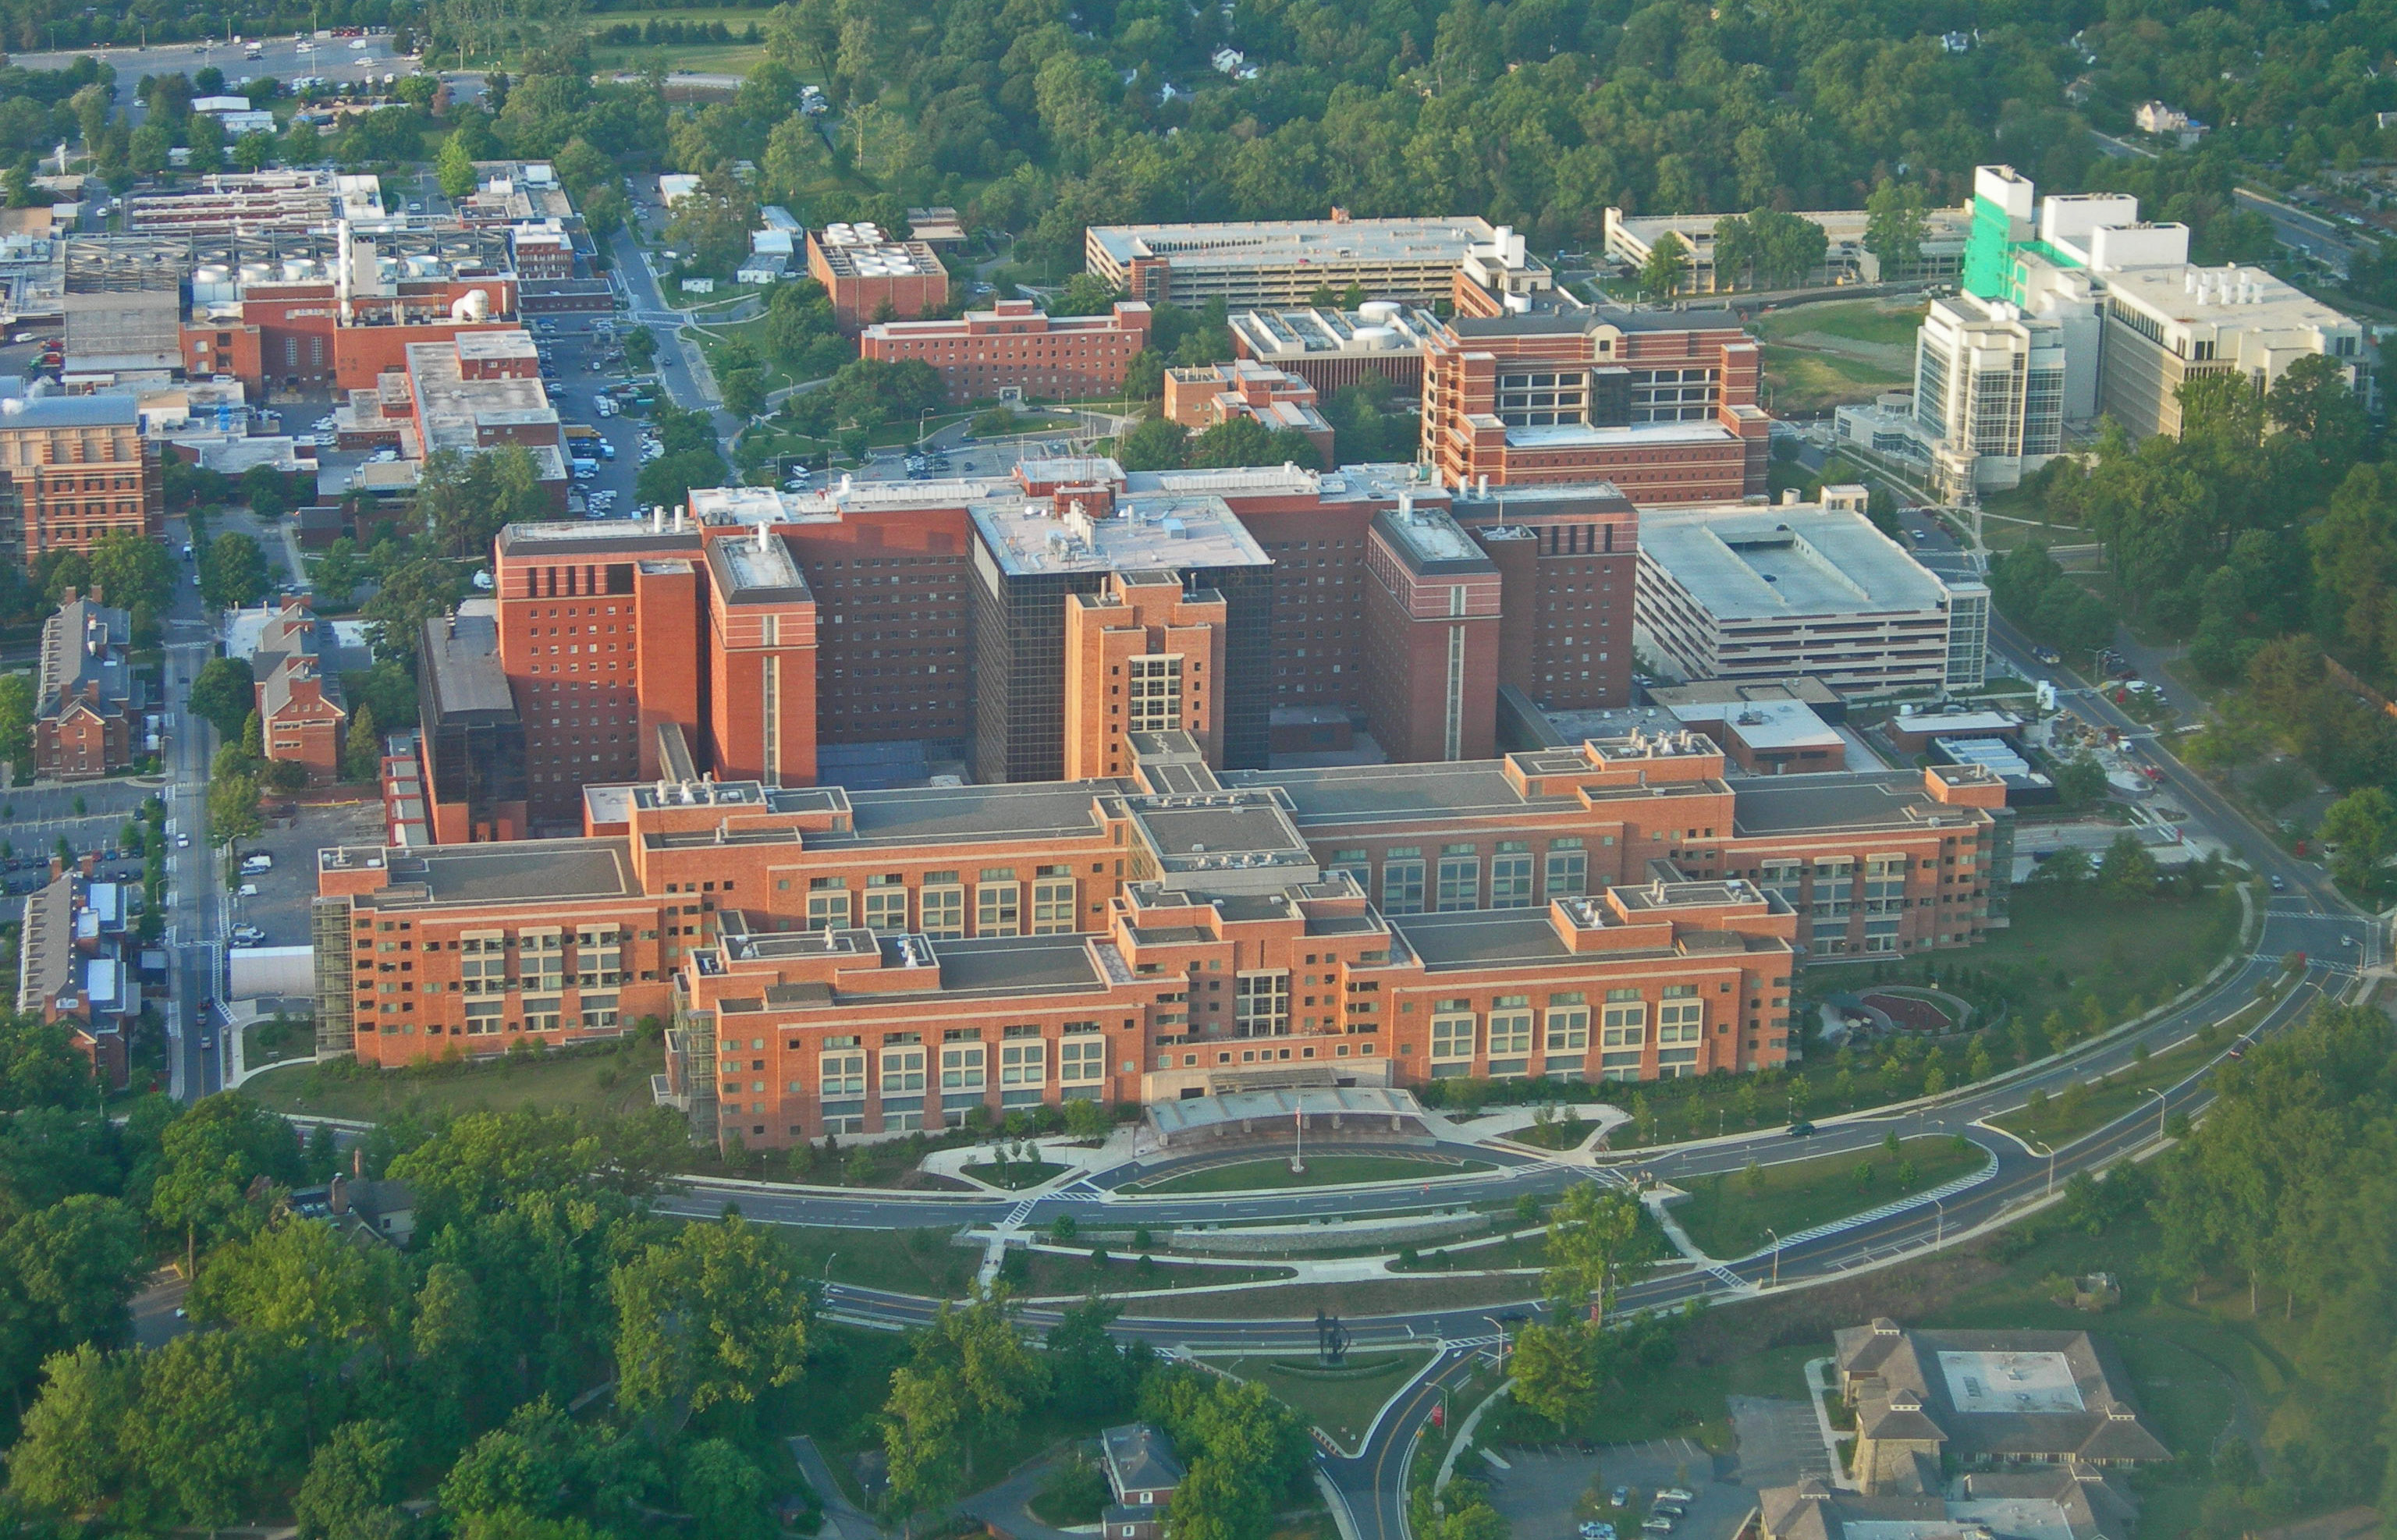 aerial view of government building